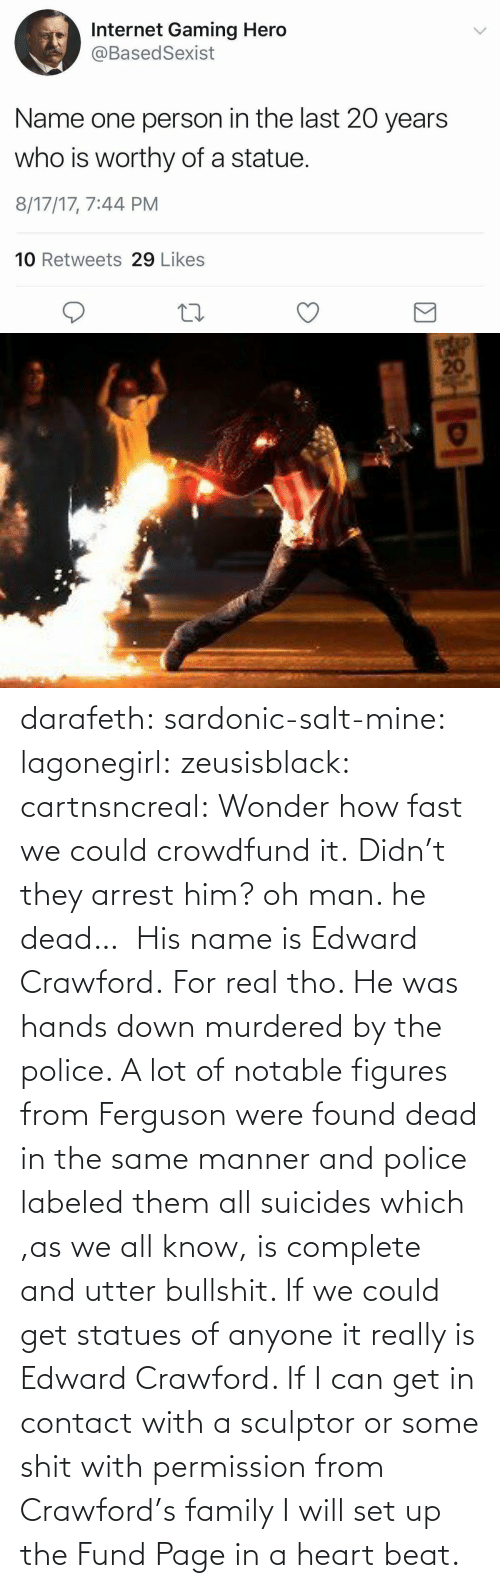 fast: darafeth: sardonic-salt-mine:  lagonegirl:  zeusisblack:  cartnsncreal:   Wonder how fast we could crowdfund it.    Didn't they arrest him?  oh man. he dead…   His name is Edward Crawford.   For real tho. He was hands down murdered by the police. A lot of notable figures from Ferguson were found dead in the same manner and police labeled them all suicides which ,as we all know, is complete and utter bullshit.  If we could get statues of anyone it really is Edward Crawford. If I can get in contact with a sculptor or some shit with permission from Crawford's family I will set up the Fund Page in a heart beat.